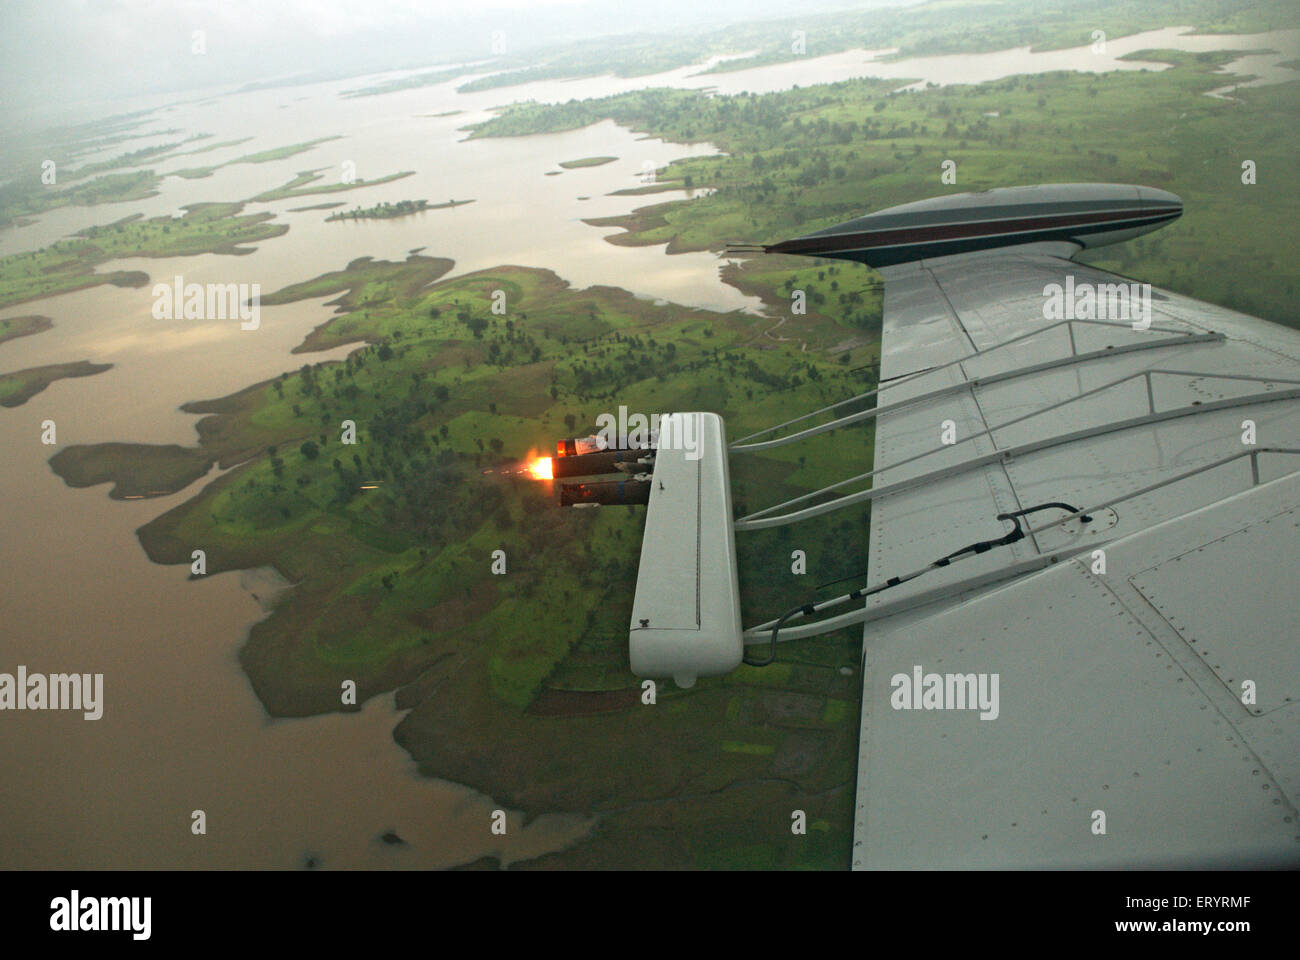 Cloud seeding by piper aircraft uppar vaitarana lake ; Nashik ; Maharashtra ; India - Stock Image